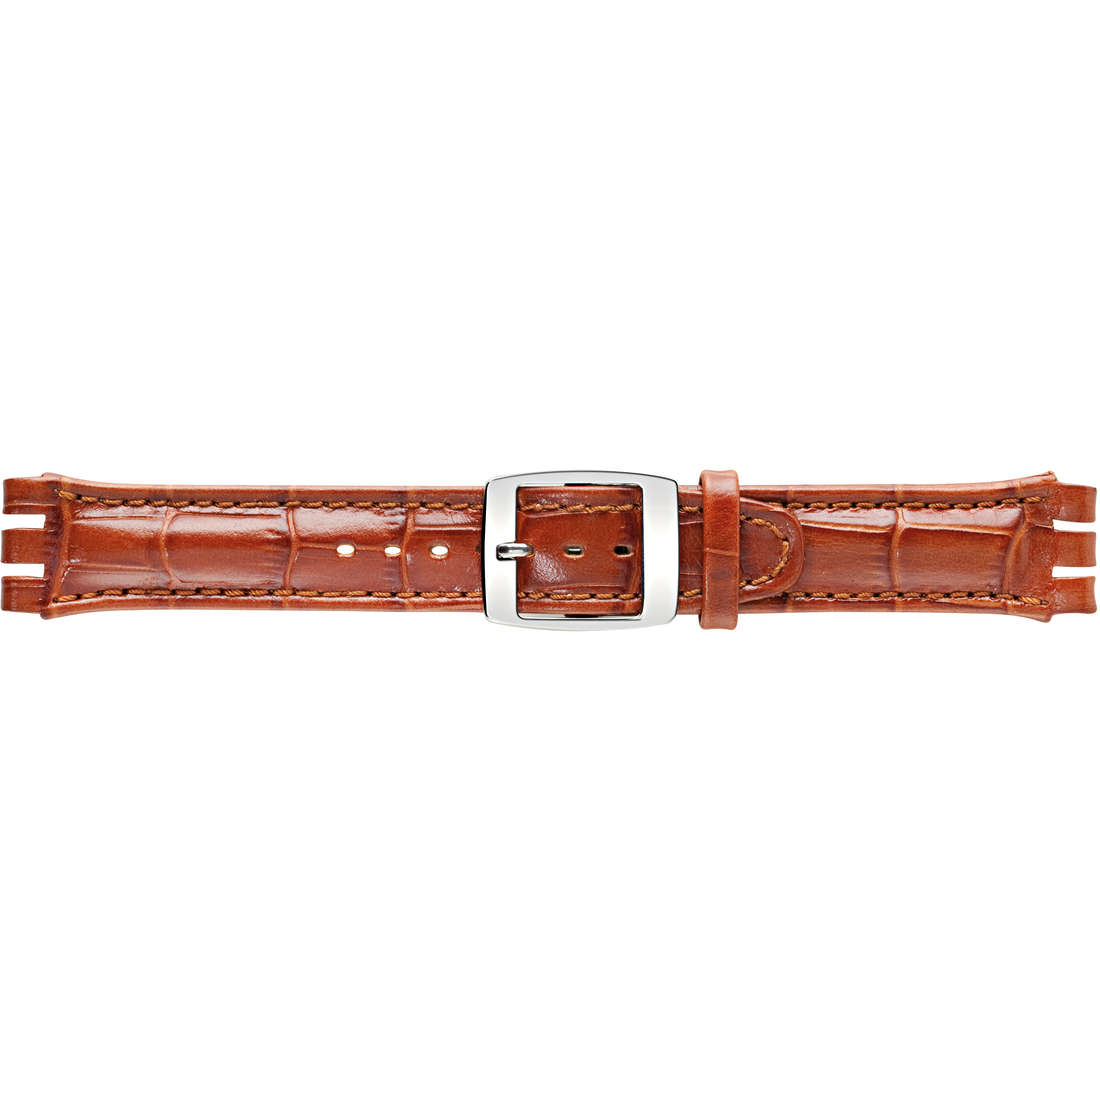 watch watch bands watch straps man Morellato Swatch A01U1840840832MO20